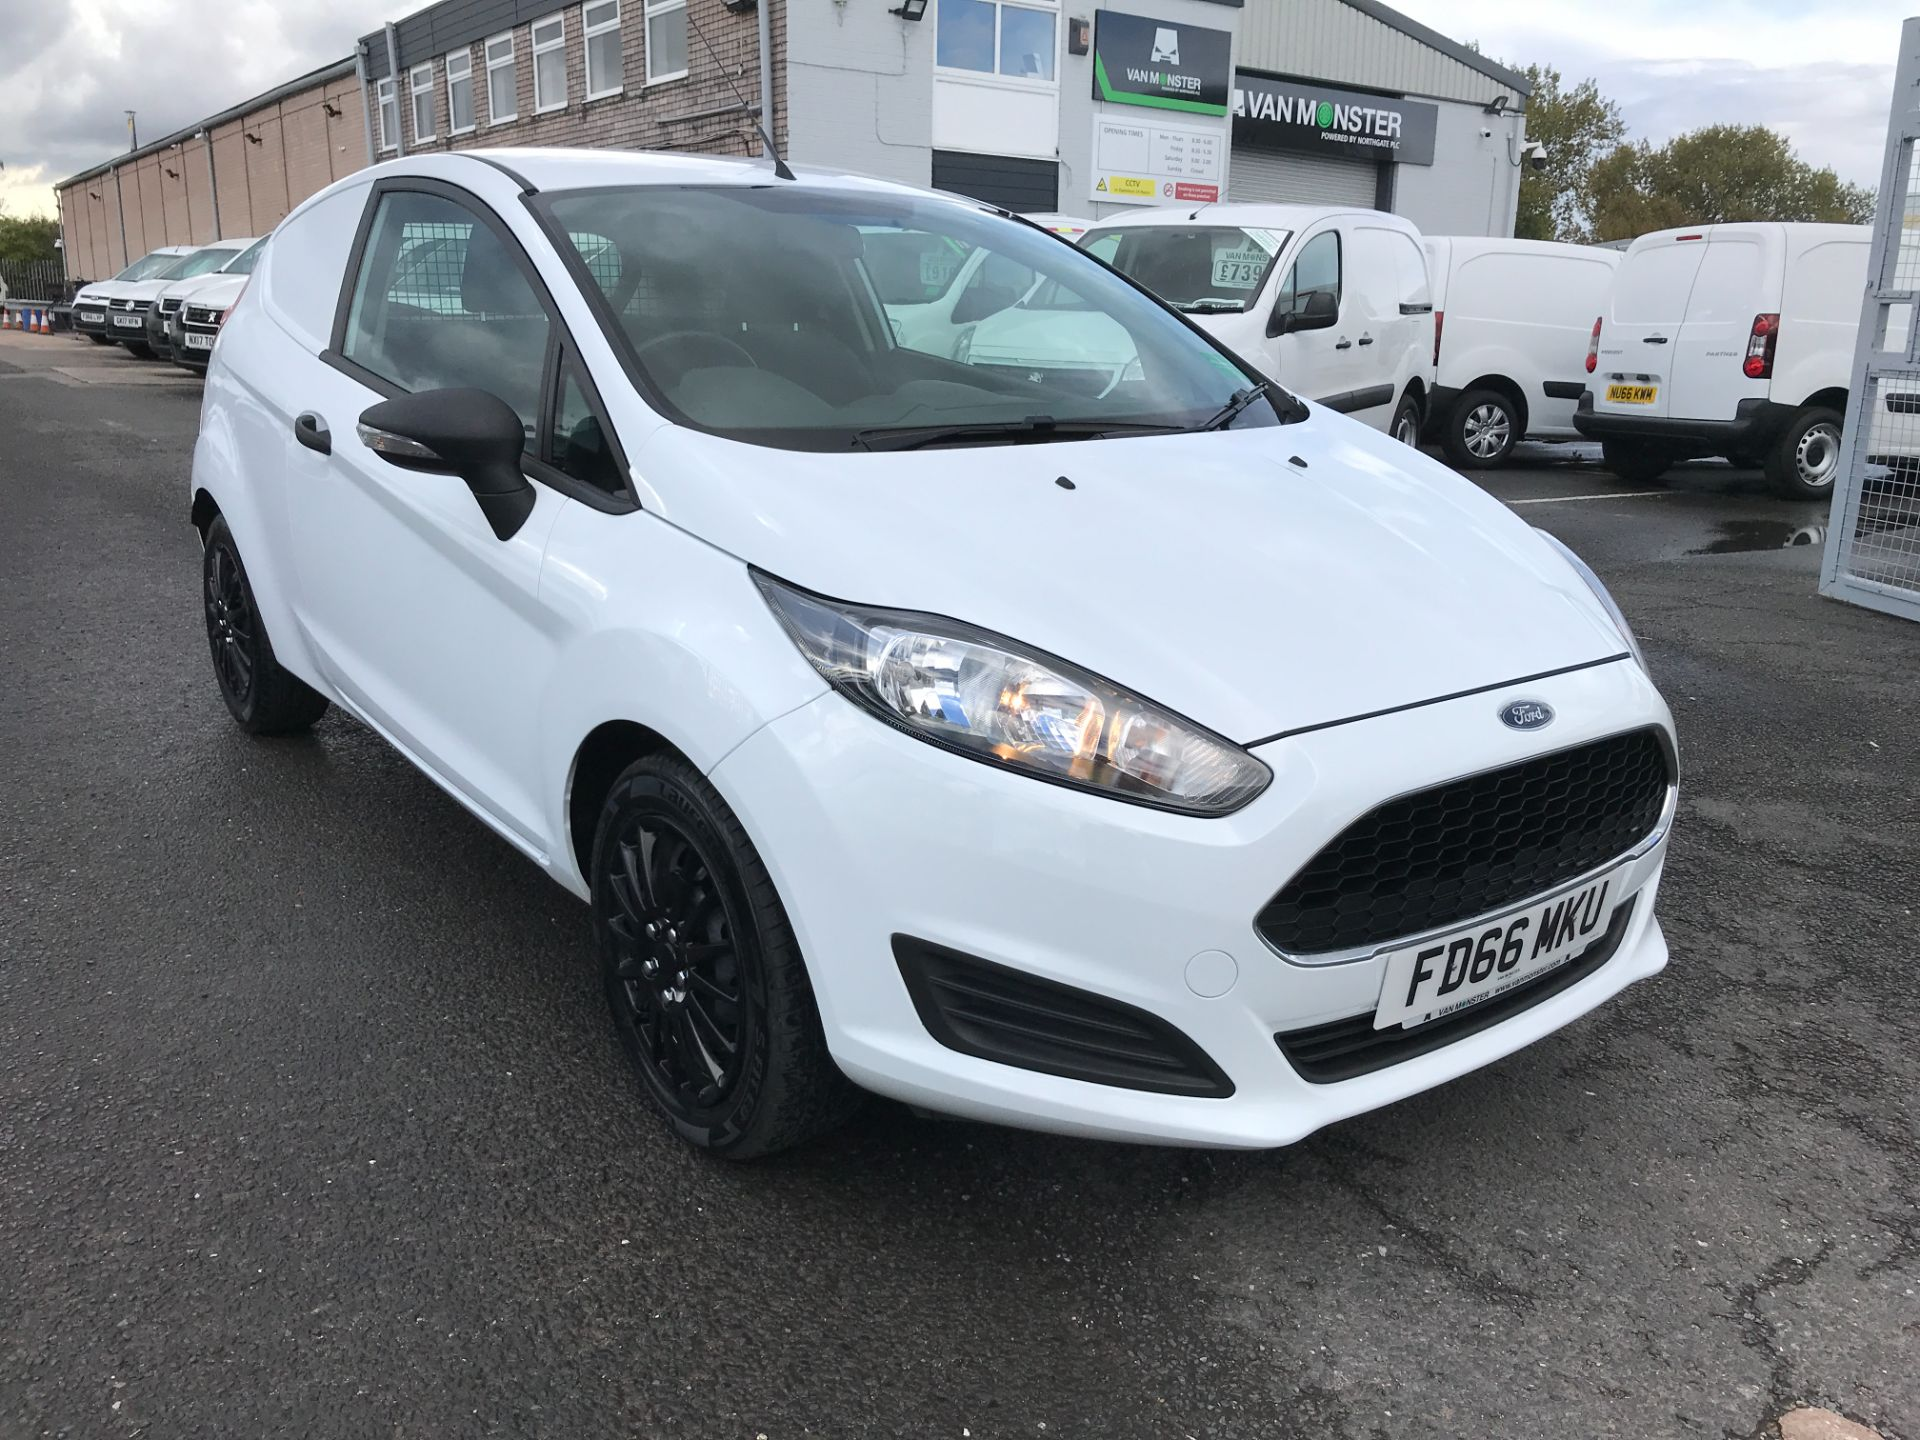 2016 Ford Fiesta 1.5TDCI 75PS EURO 6, AIR CON (FD66MKU)